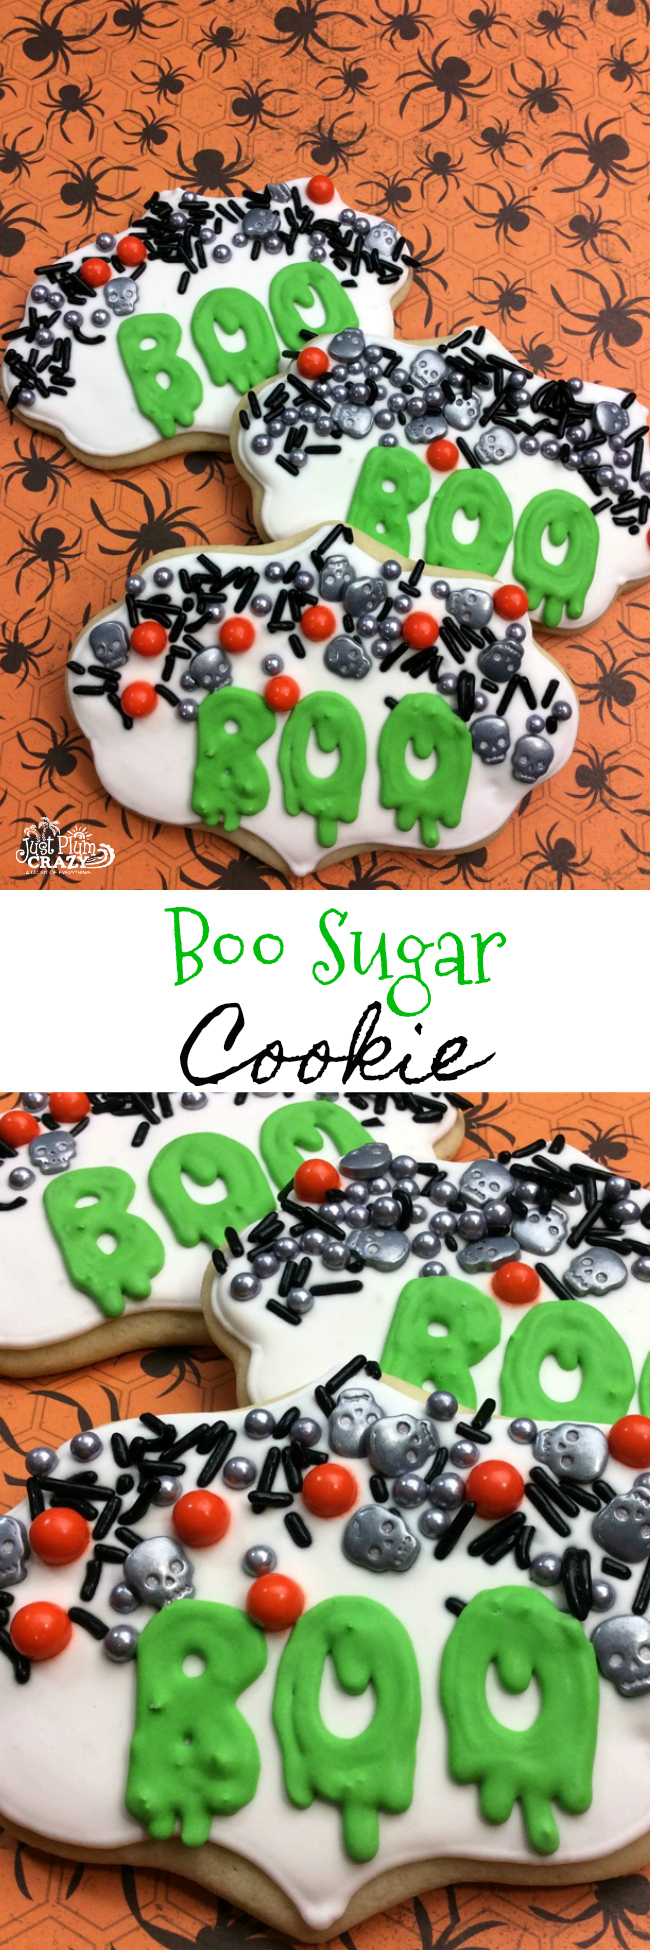 These BOO Sugar Cookie Recipe is sure to scare the daylights out of anyone. There is nothing scary about these except for how scary good they are.